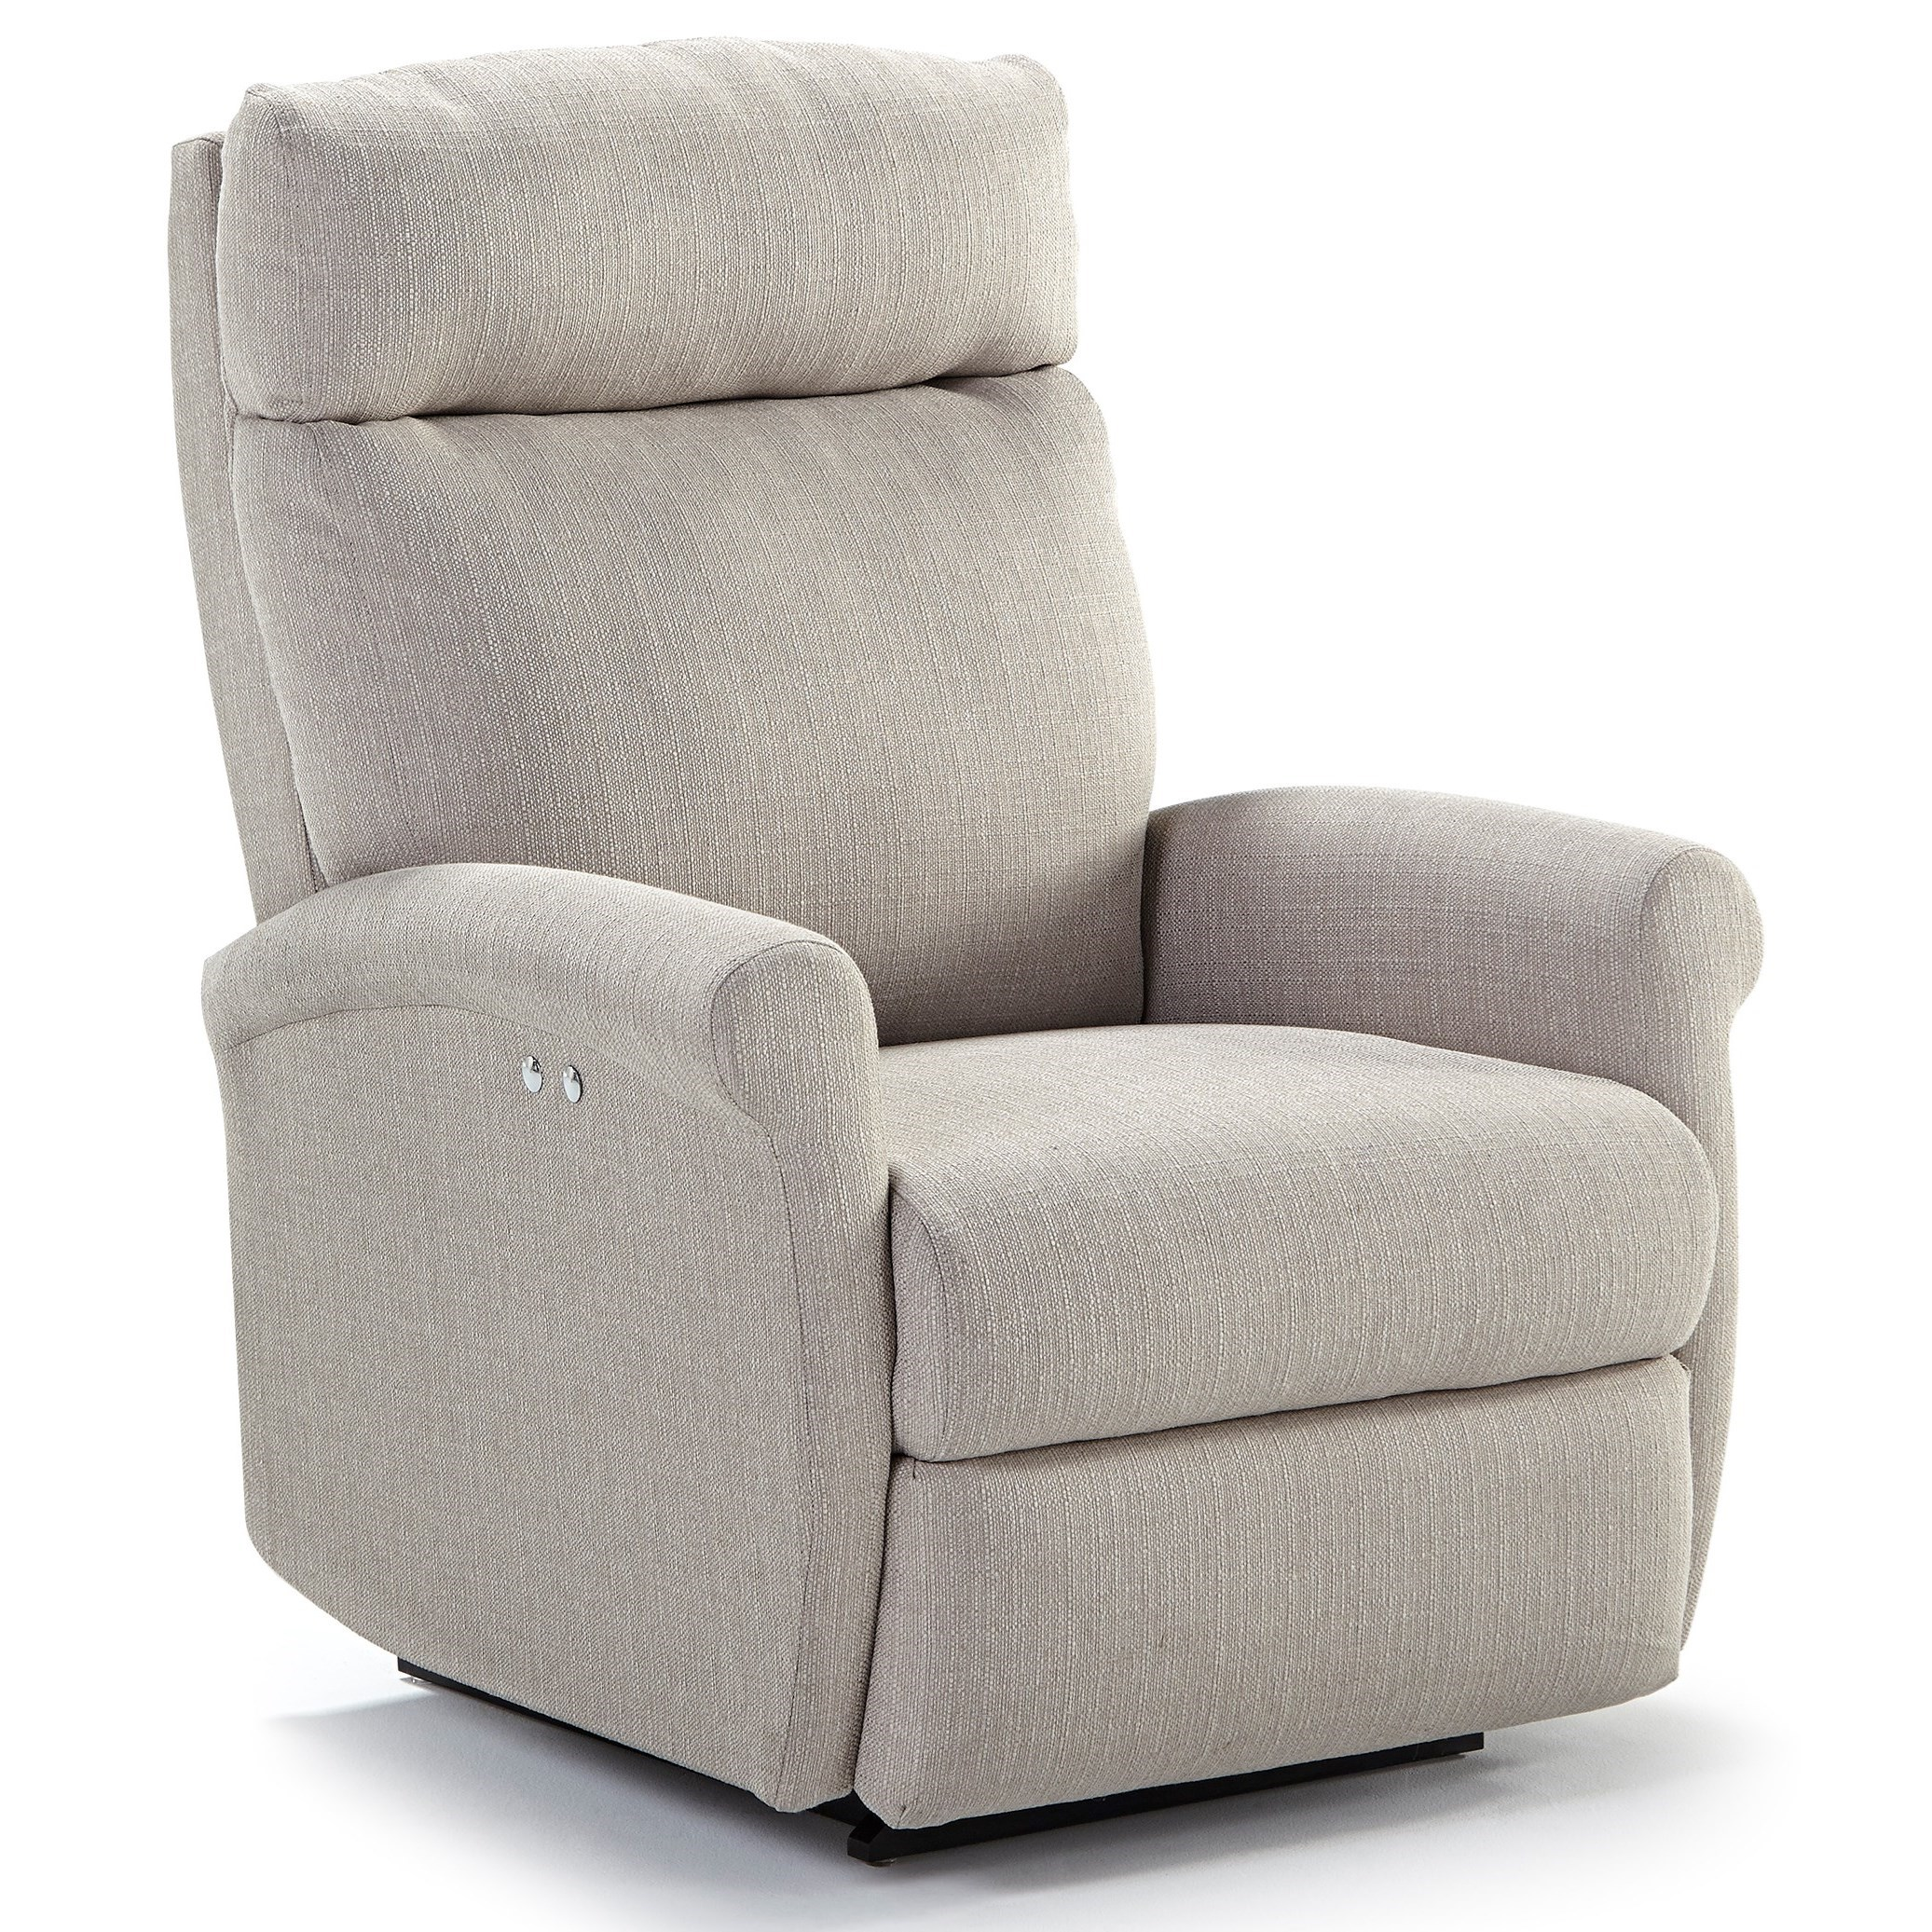 Best Home Furnishings Recliners - Petite Swivel Glider Recliner - Item Number: -2060136600-21609